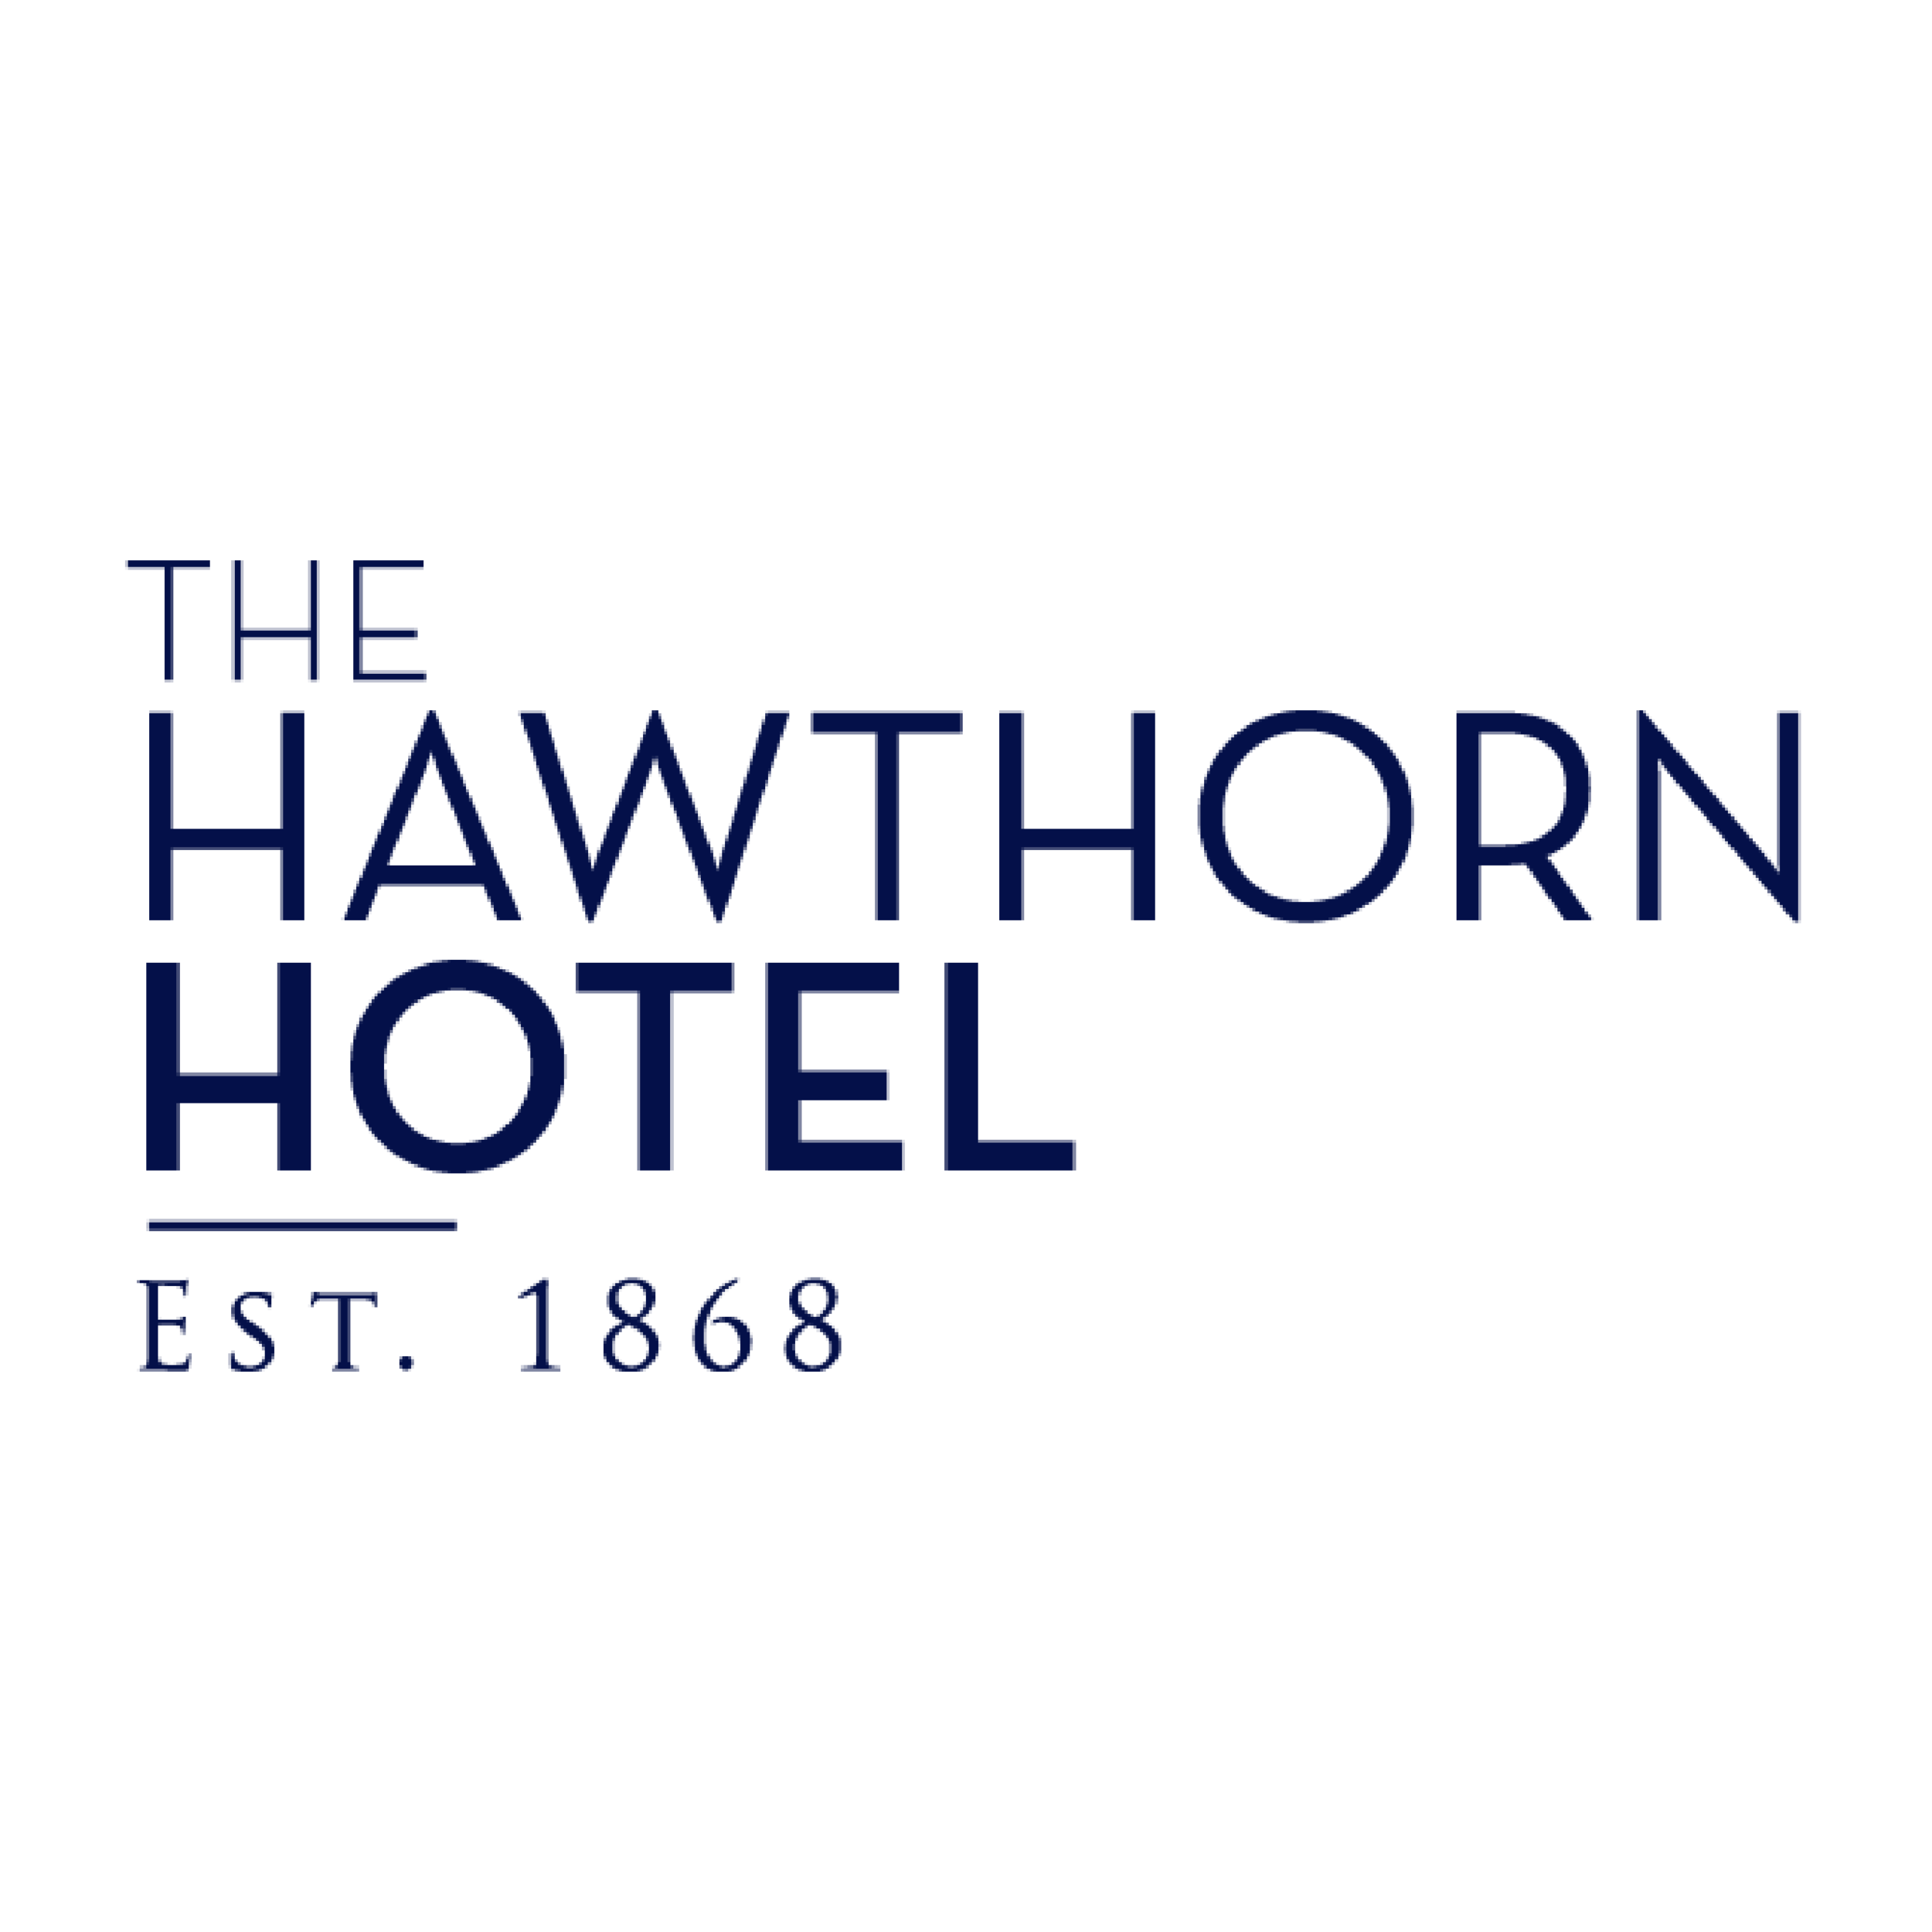 - The Hawthorn Hotel has been a sponsor of SUSS longer than anyone has been a member of the club. Located at 481 Burwood Road and more or less the closest pub to campus. The Hawthorn Hotel offers members of the club $3.50 pots, $7 pints and $15 jugs of Twin Peaks Lager, any Hawthorn Brewery product or 5 Seeds Cider, as well as $5 Red, White & Sparkling Wine and $6 Basic Spirits all day, every day! Whilst on the food side of things SUSS members are treated to $13 Parmas or any variety or a vegetarian option. You can also receive a further 15% off if you purchase through the Australian Venue Co. App using our unique SUSS code! In addition, the SUSS membership card gives priority entry to Tightarse Tuesday before 10pm. The Hawthorn Hotel is also SUSS's main event holder with nearly all events including Welcome Back Party, Booking Night, Trivia and Trip Meetings held at the venue. So head in to the 'Hawka' today to say G'day to the amazing staff, and don't forget to swipe your SUSS card for your discounts and rewards!